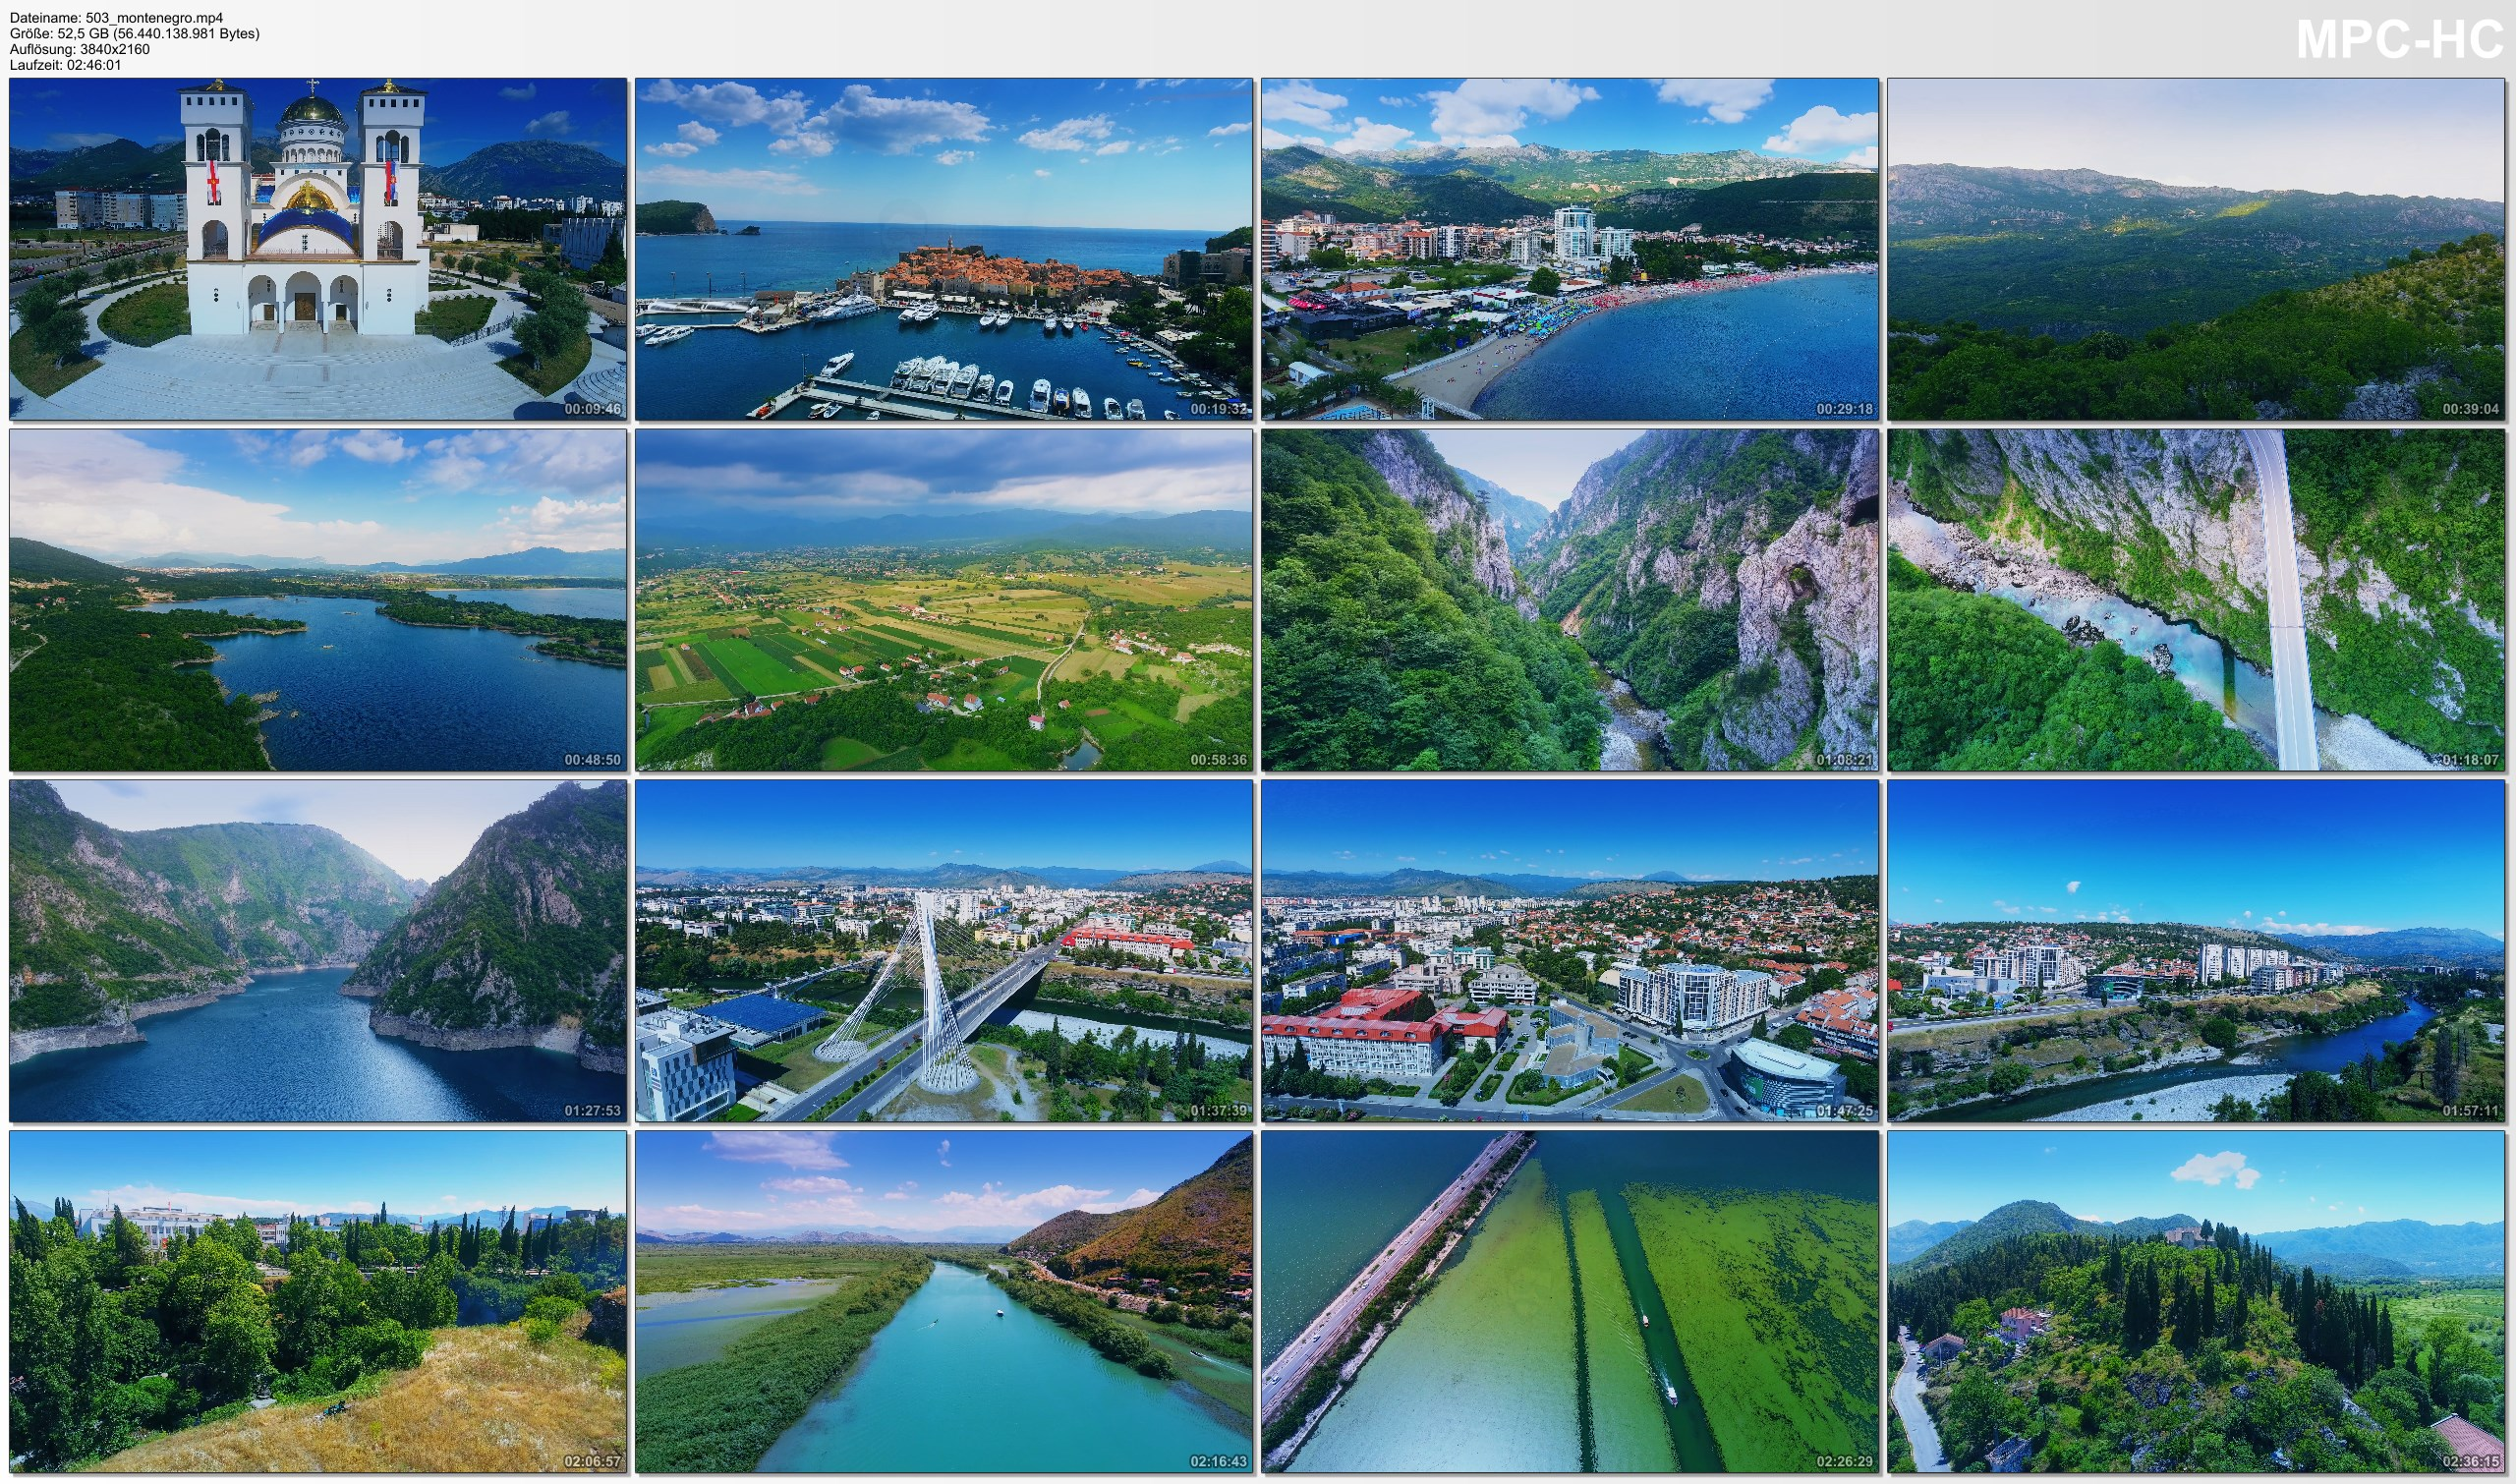 Drone Pictures from Video 【4K】Drone RAW Footage | This is MONTENEGRO 2020 | Podgorica | Budva and More | UltraHD Stock Video